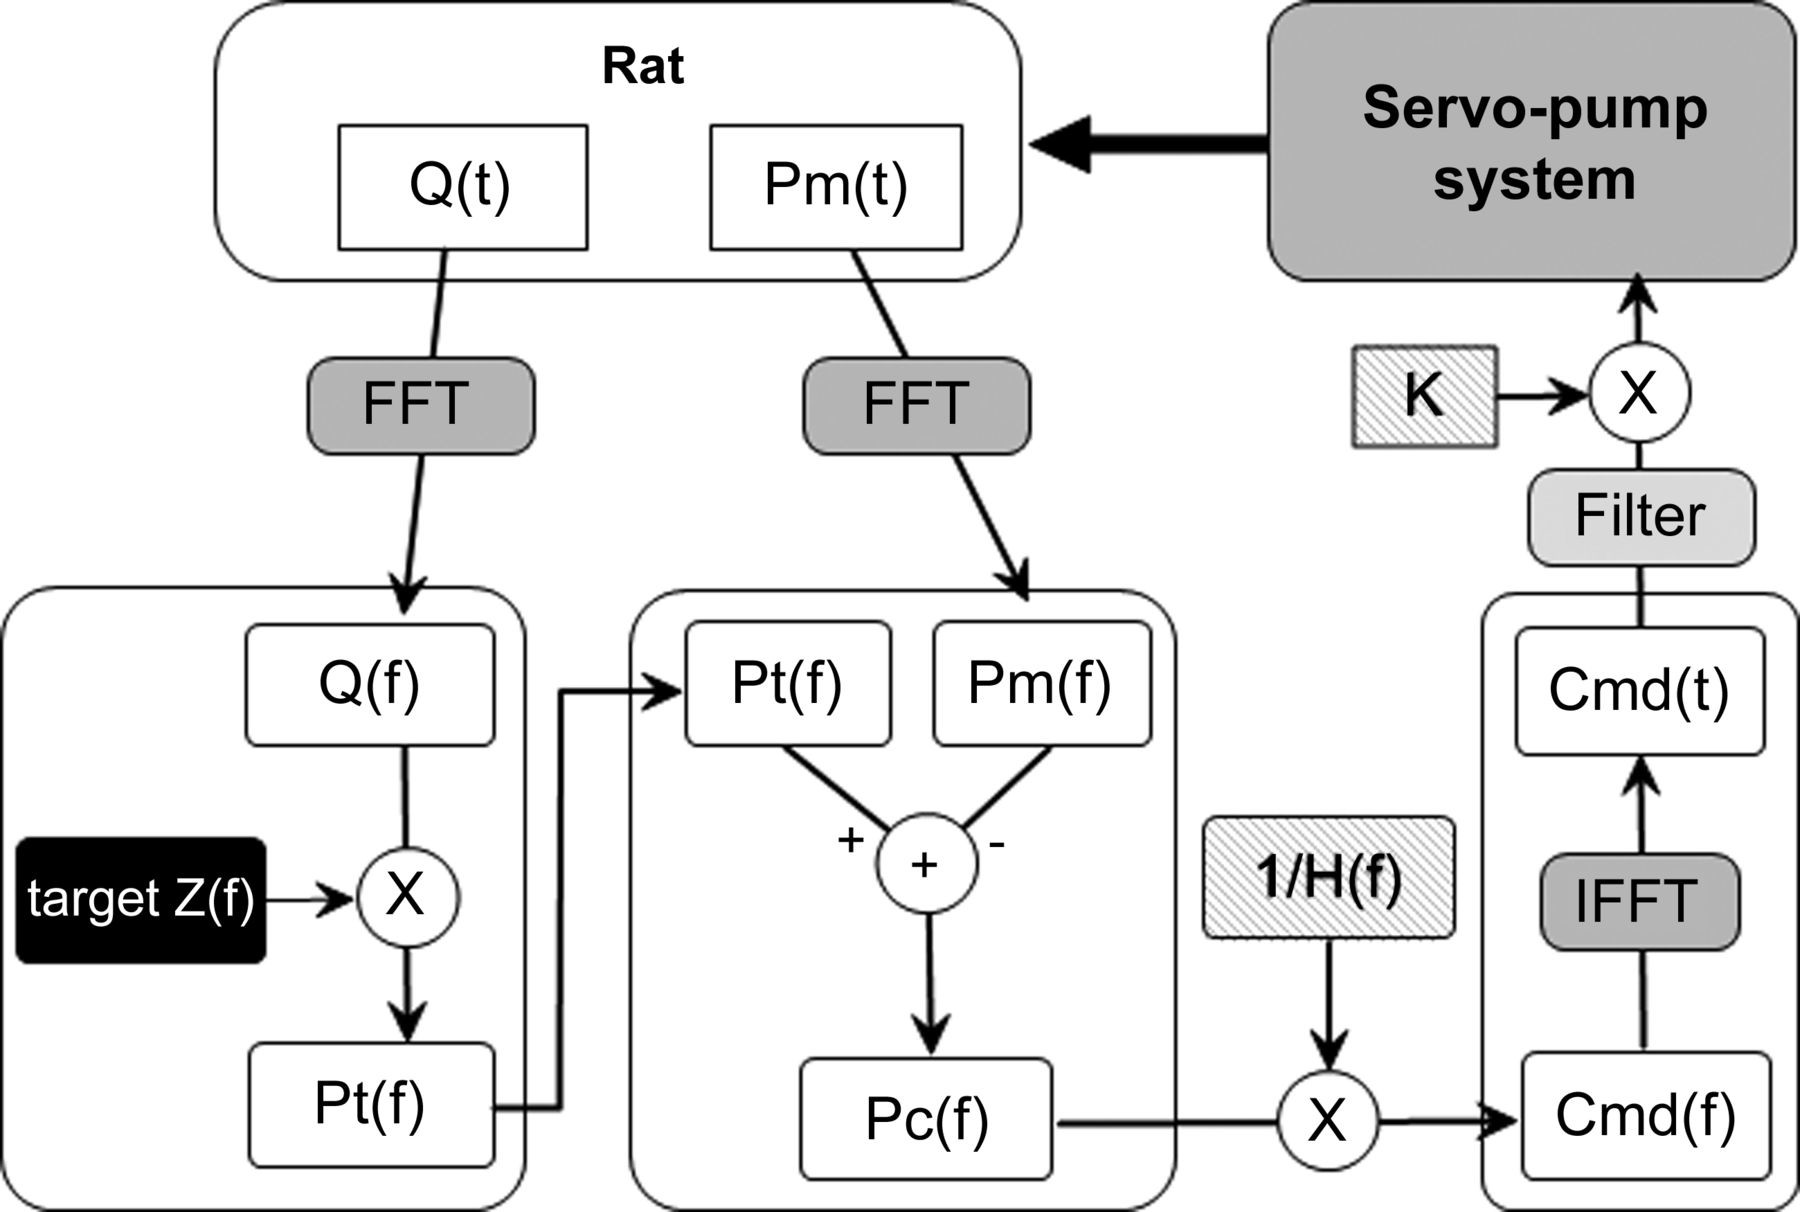 development of a servo pump system for in vivo loading of pathological pulmonary artery